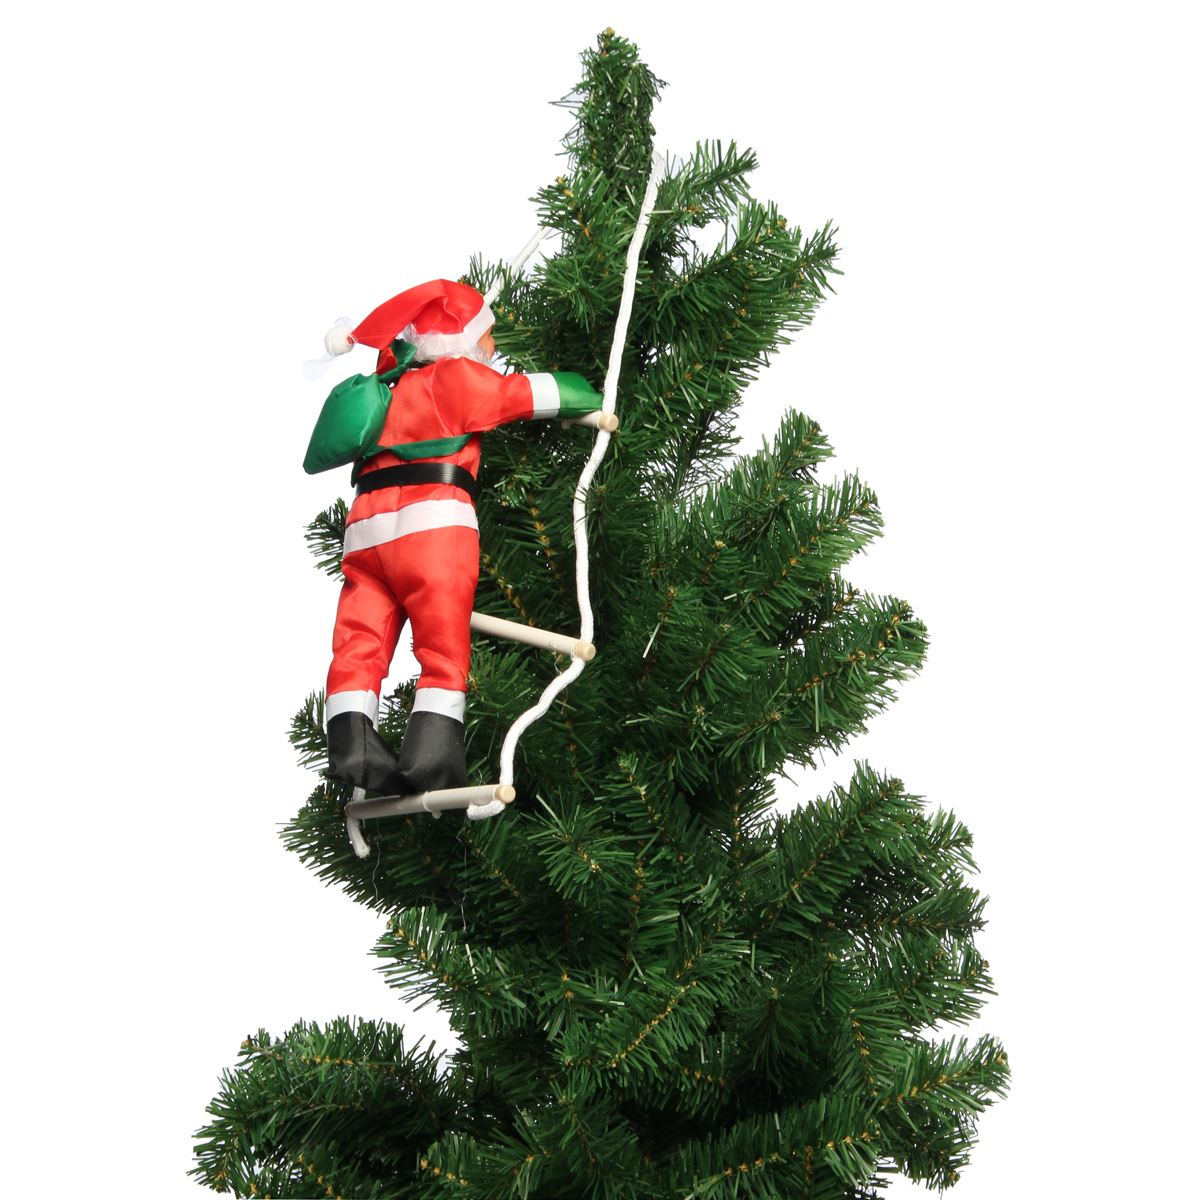 newest climbing santa claus with rope ladder outdoor christmas tree decorations for home new year gifts party events supplies in pendant drop ornaments